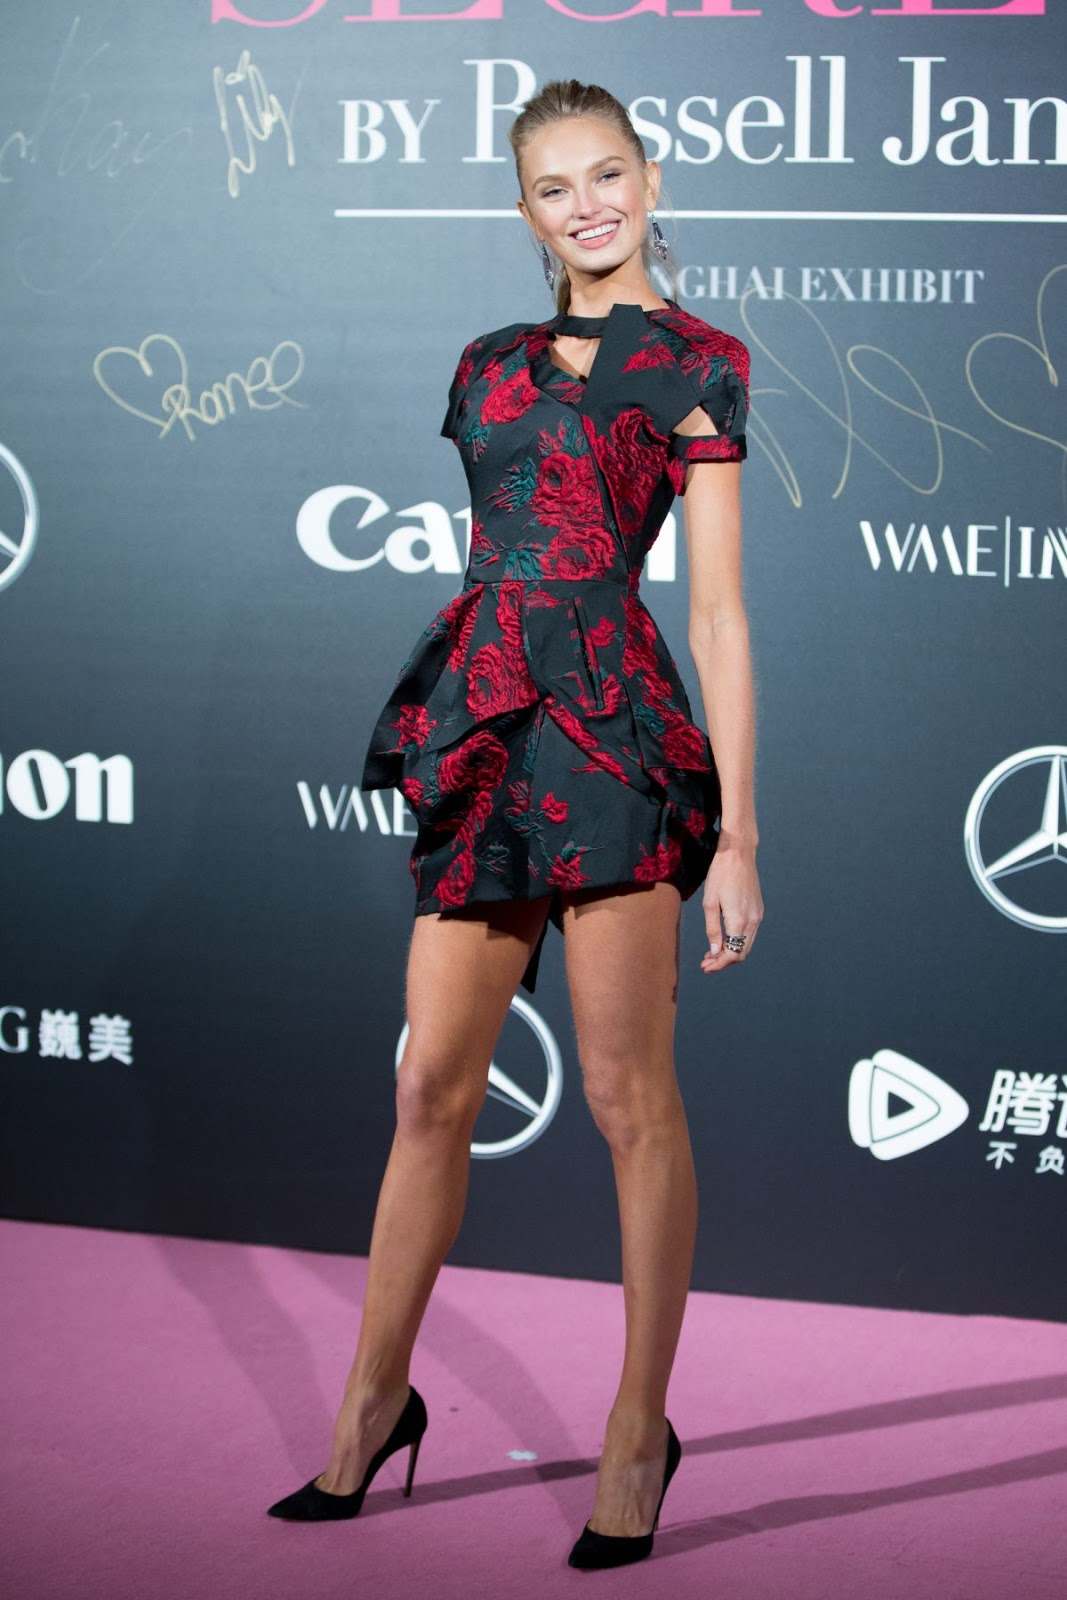 Photos of Romee Strijd at Mercedes-Benz Backstage Secrets in Shanghai